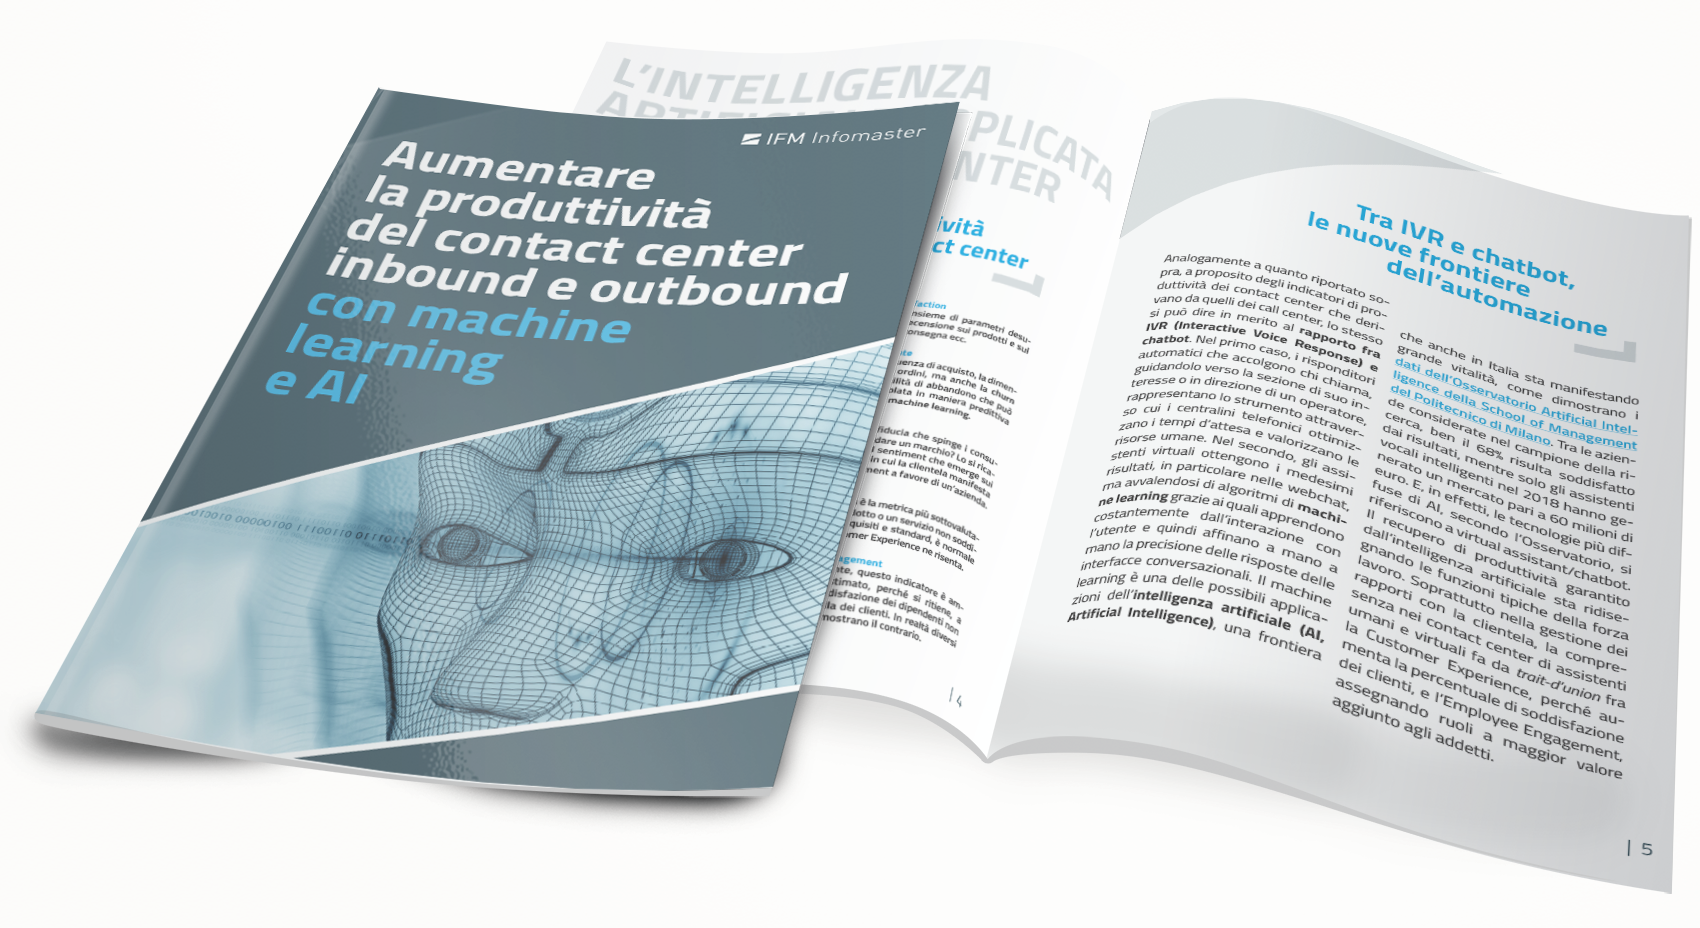 MockUp_White paper_Aumentare la produttività del contact center inbound e outbound_v1[1]